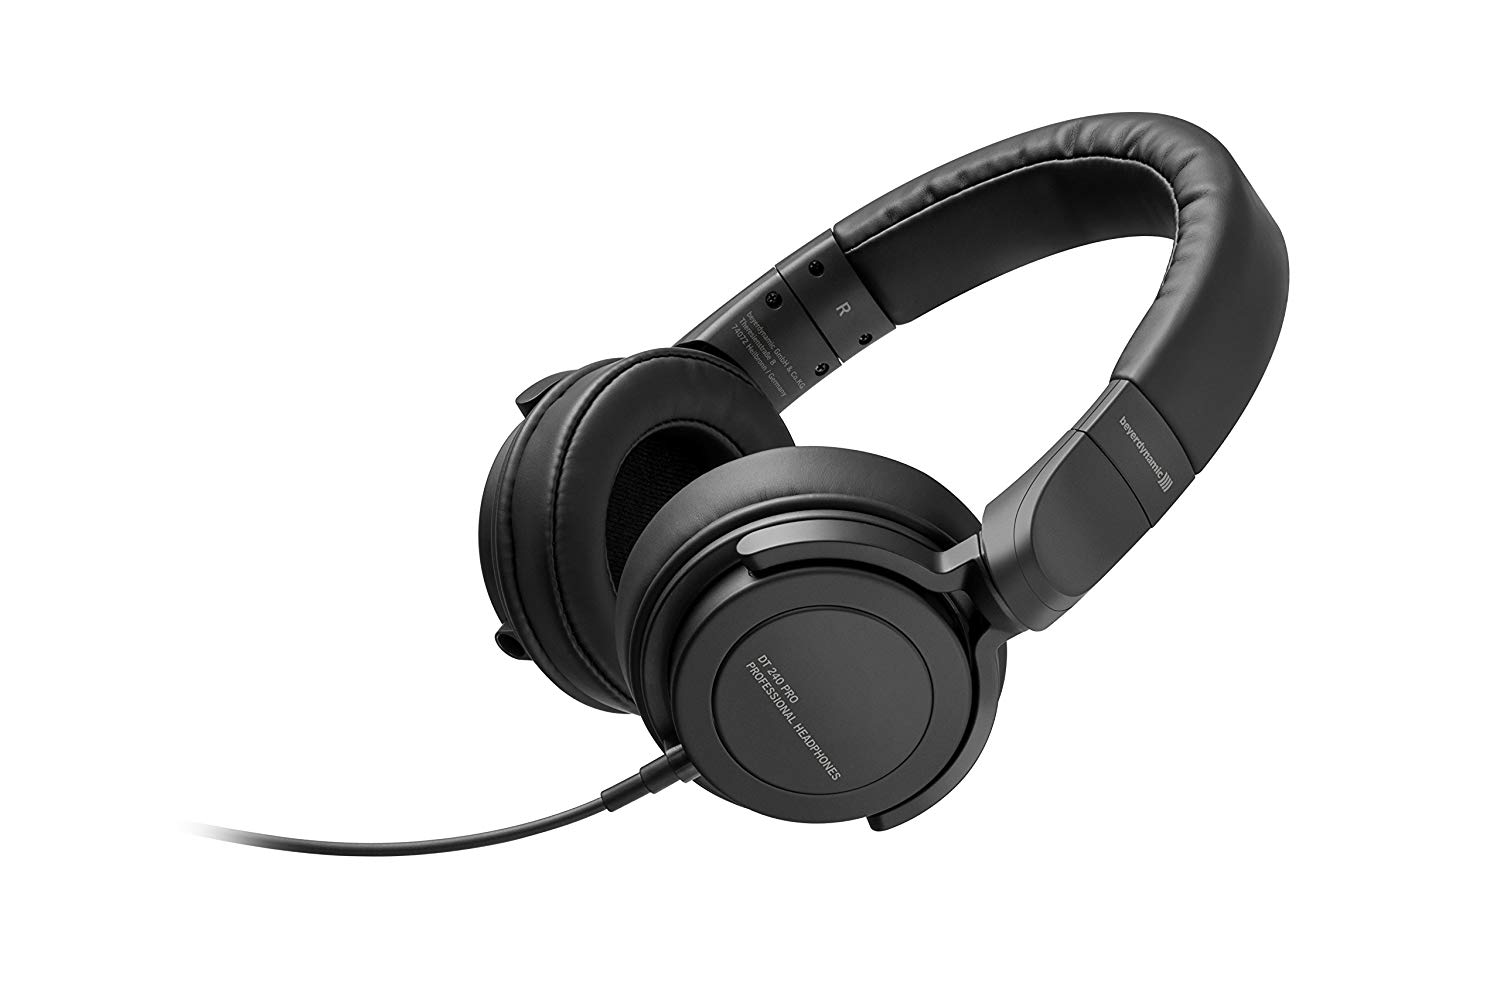 Beyerdynamic DT 240 Pro Monitoring Headphone Review 2020